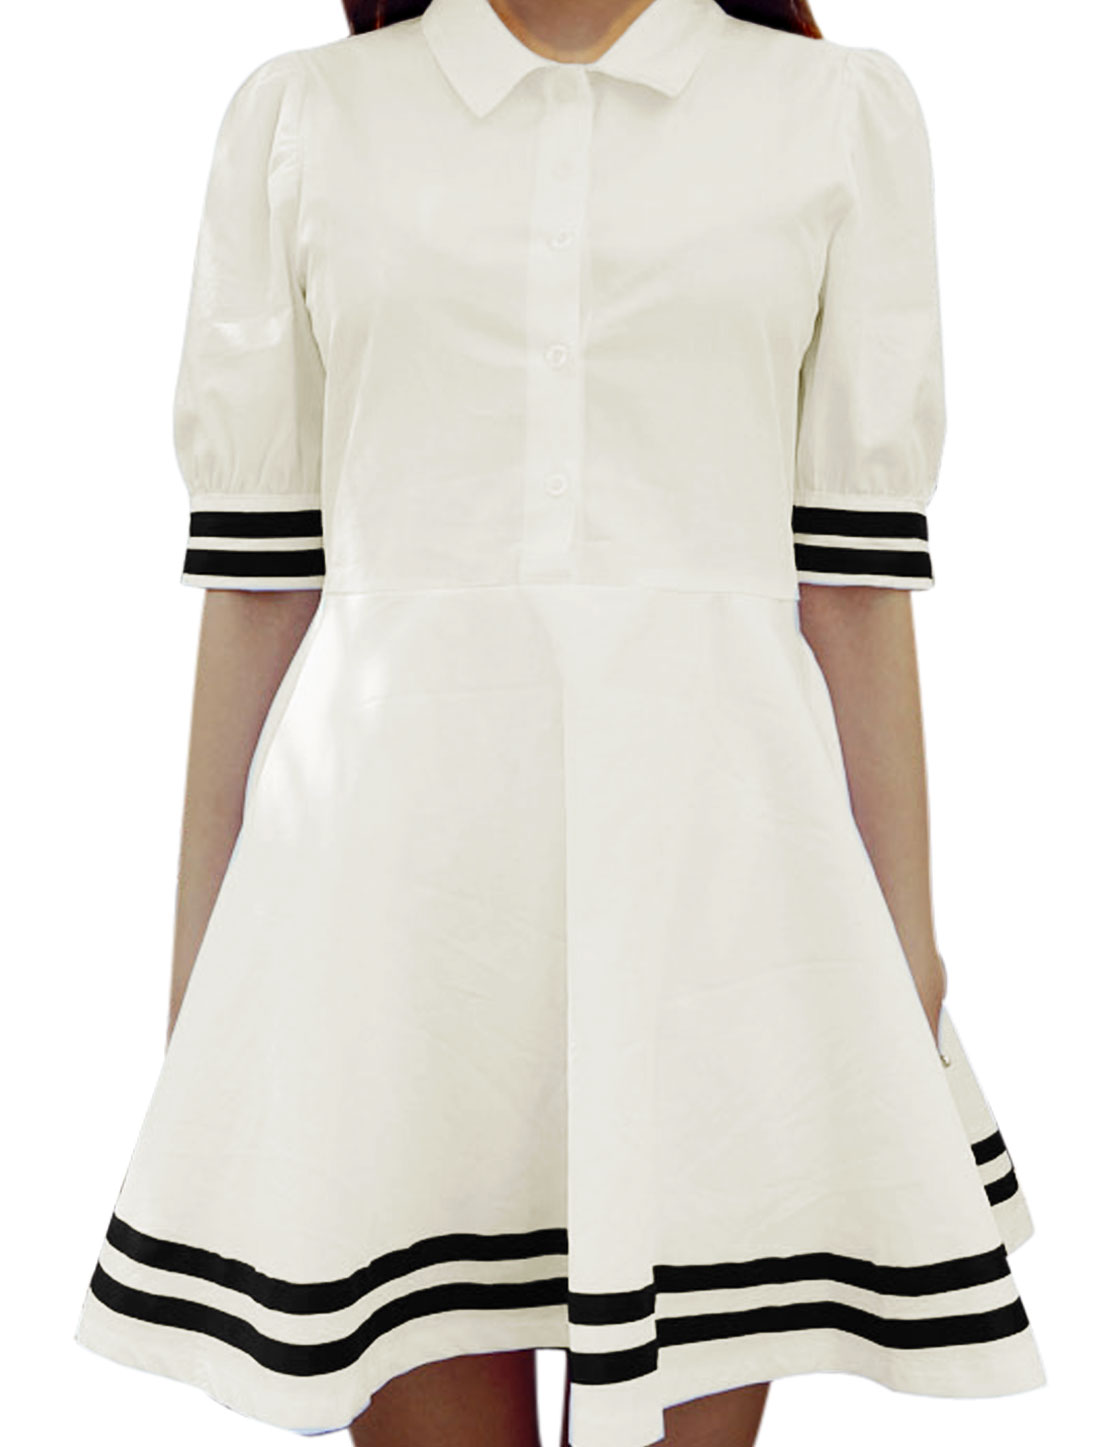 Lady Button Closure Front Stripes Edge Short Sleeve Casual Short Dress White XS